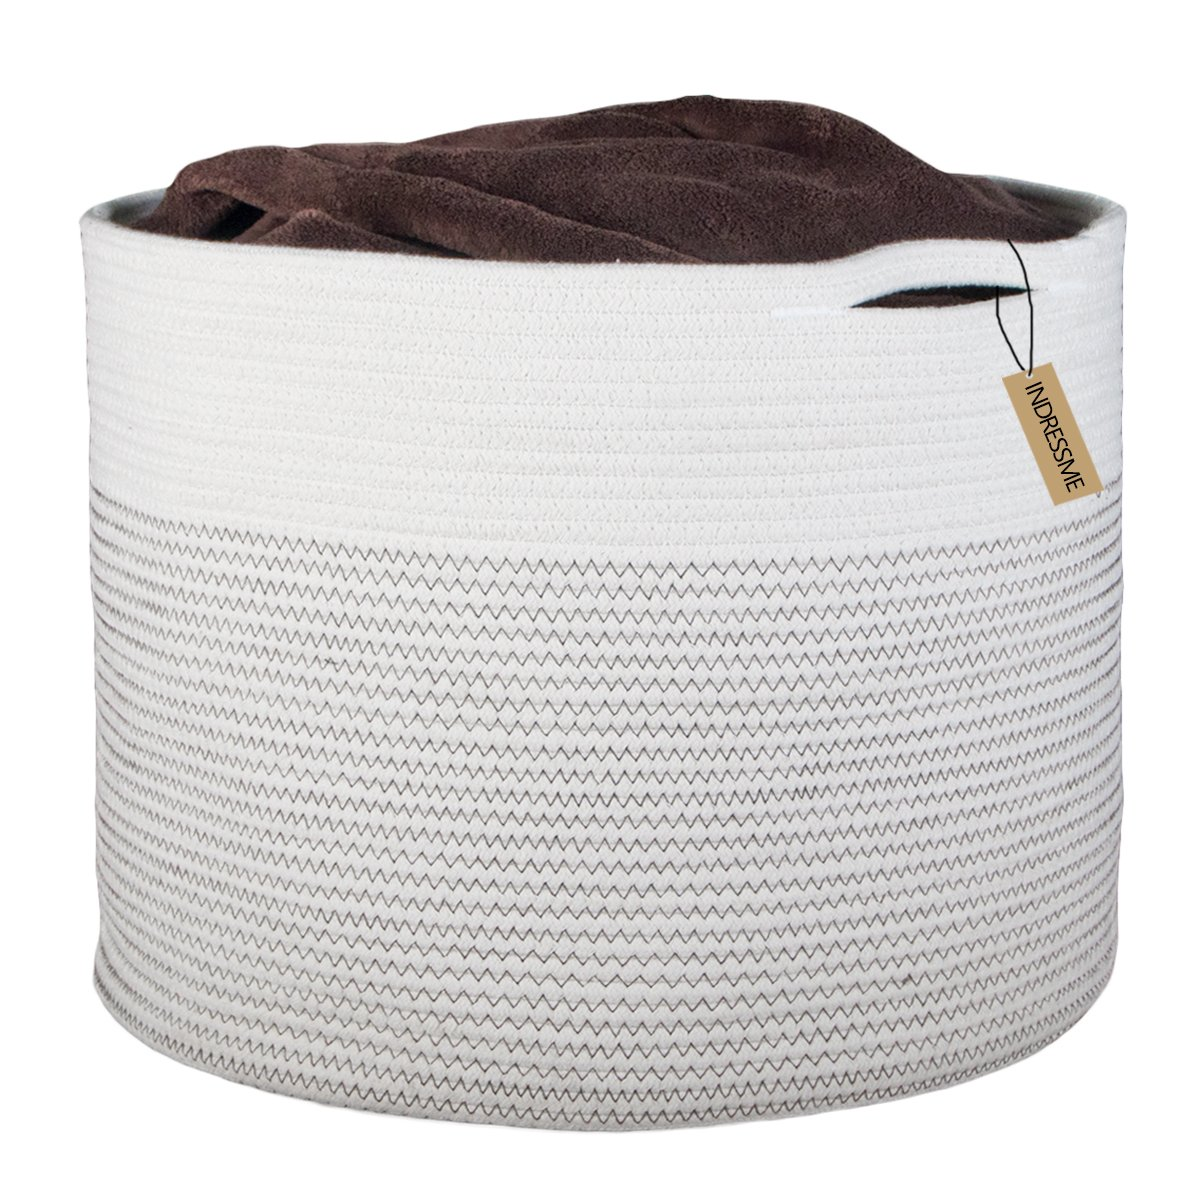 INDRESSME Extra Large Storage Baskets Cotton Rope Basket Woven Storage Bin Baby Laundry Basket with Handle for Diaper Toy Cute Neutral Home Decor Addition Diaper Toy Hamper, 43 x 37CM rack08-mixINDRESSME